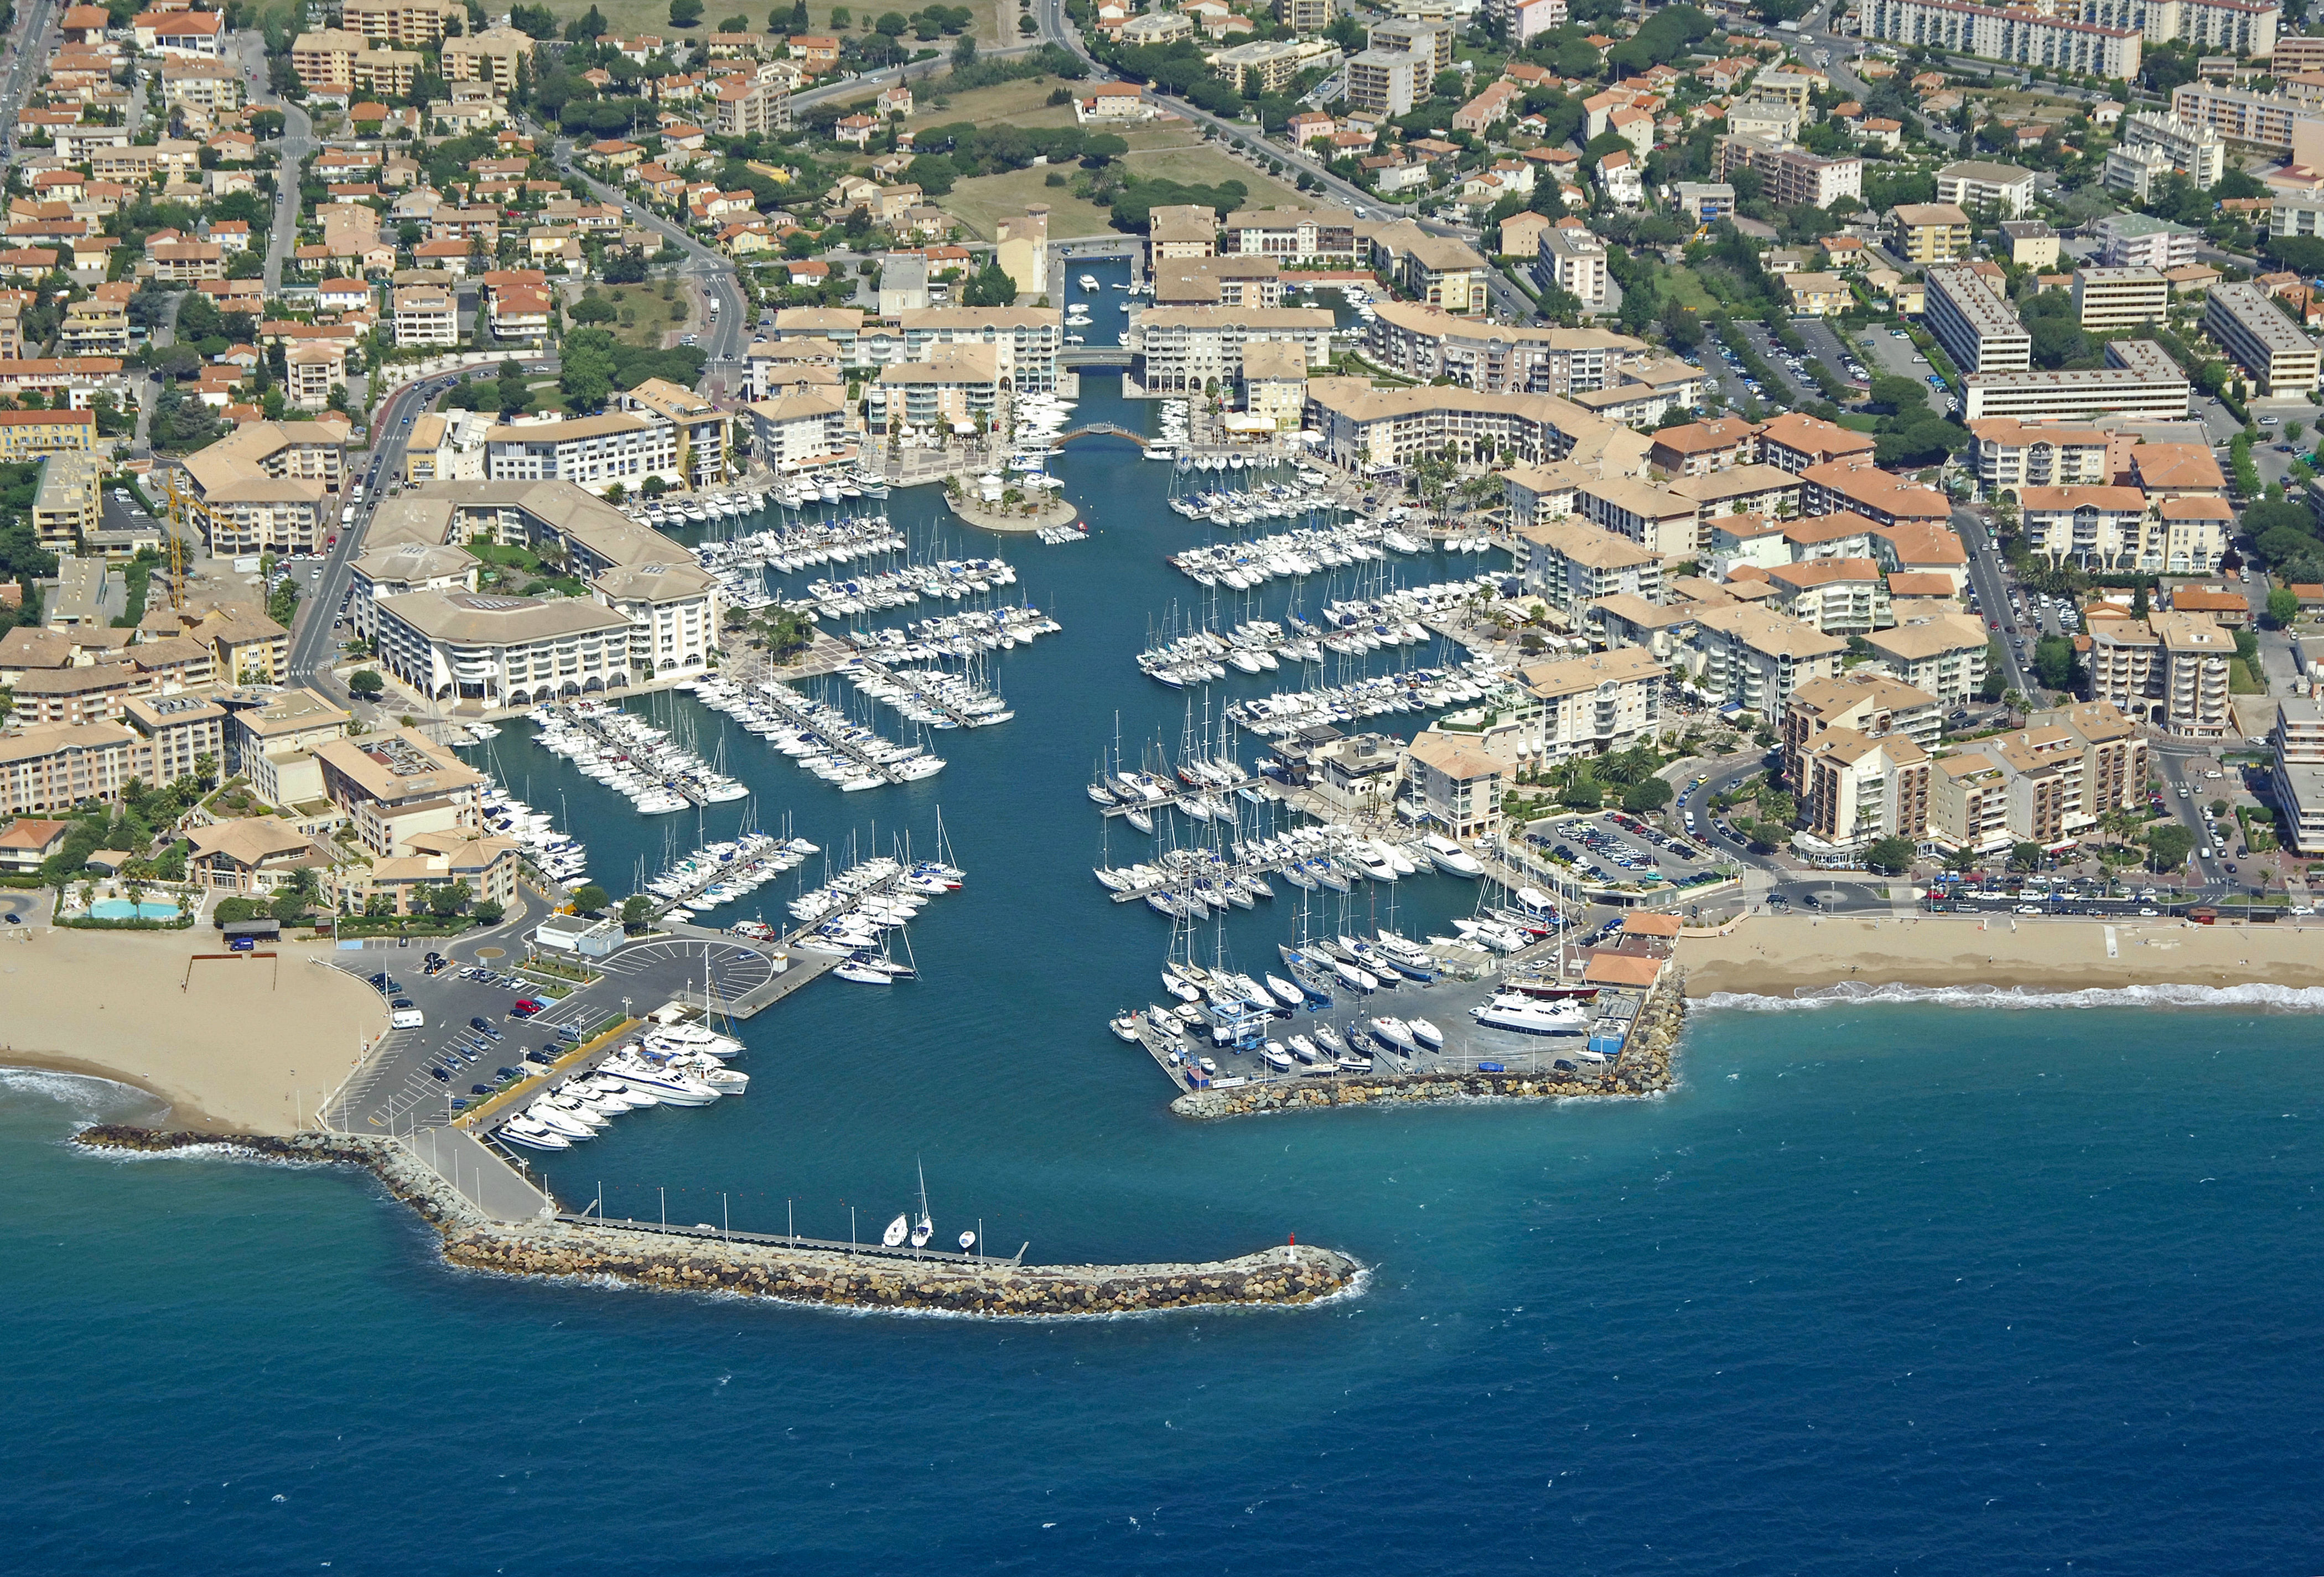 Port de frejus marina in frejus provence alpes cote d - Weather forecast st jean pied de port france ...